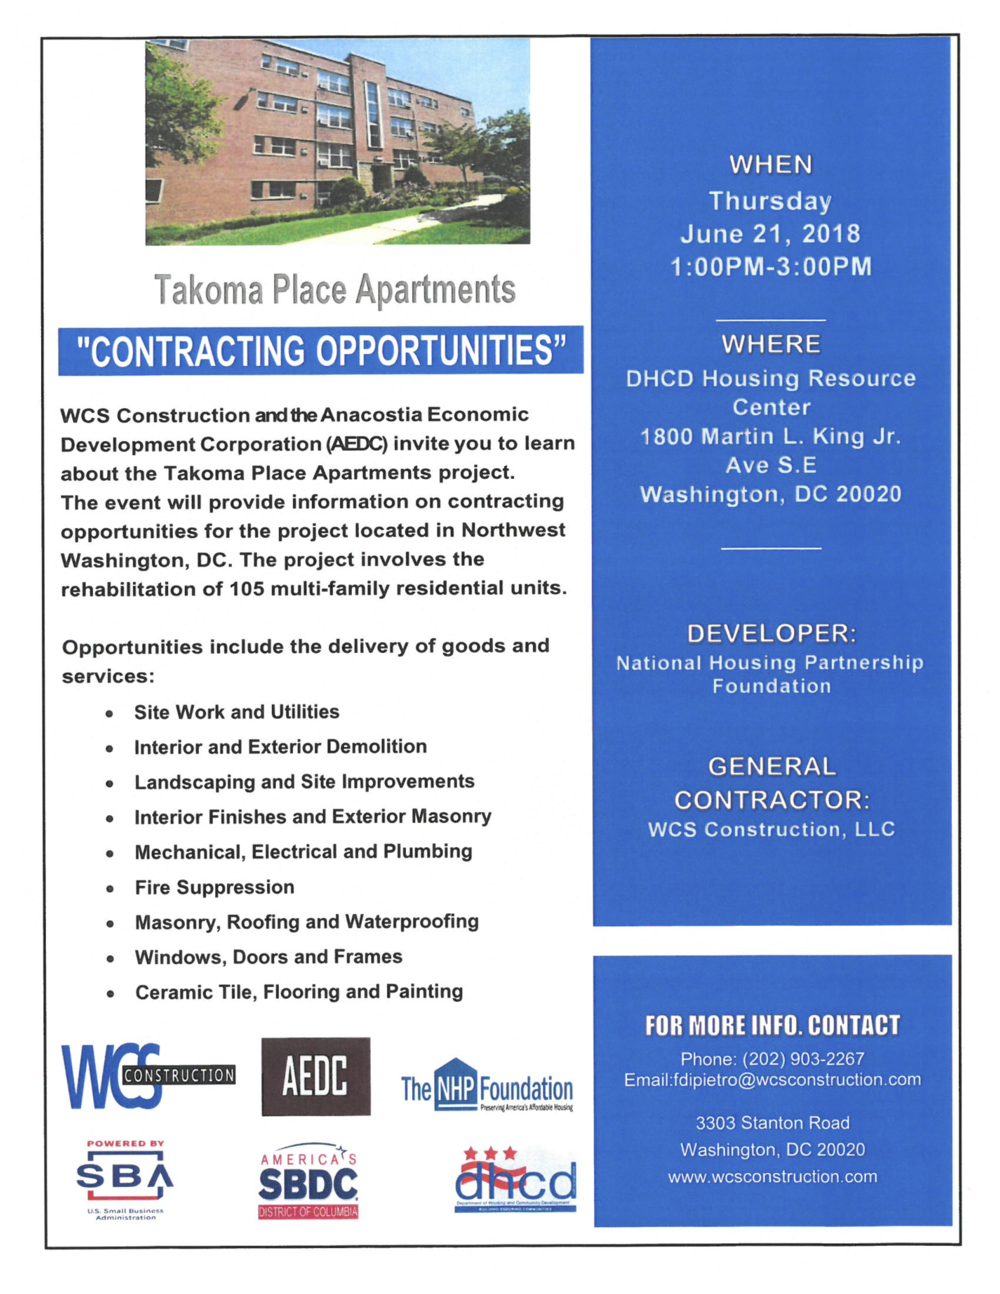 FLYER - Contracting Opportunities - Takoma Place Apartments - FINAL.png